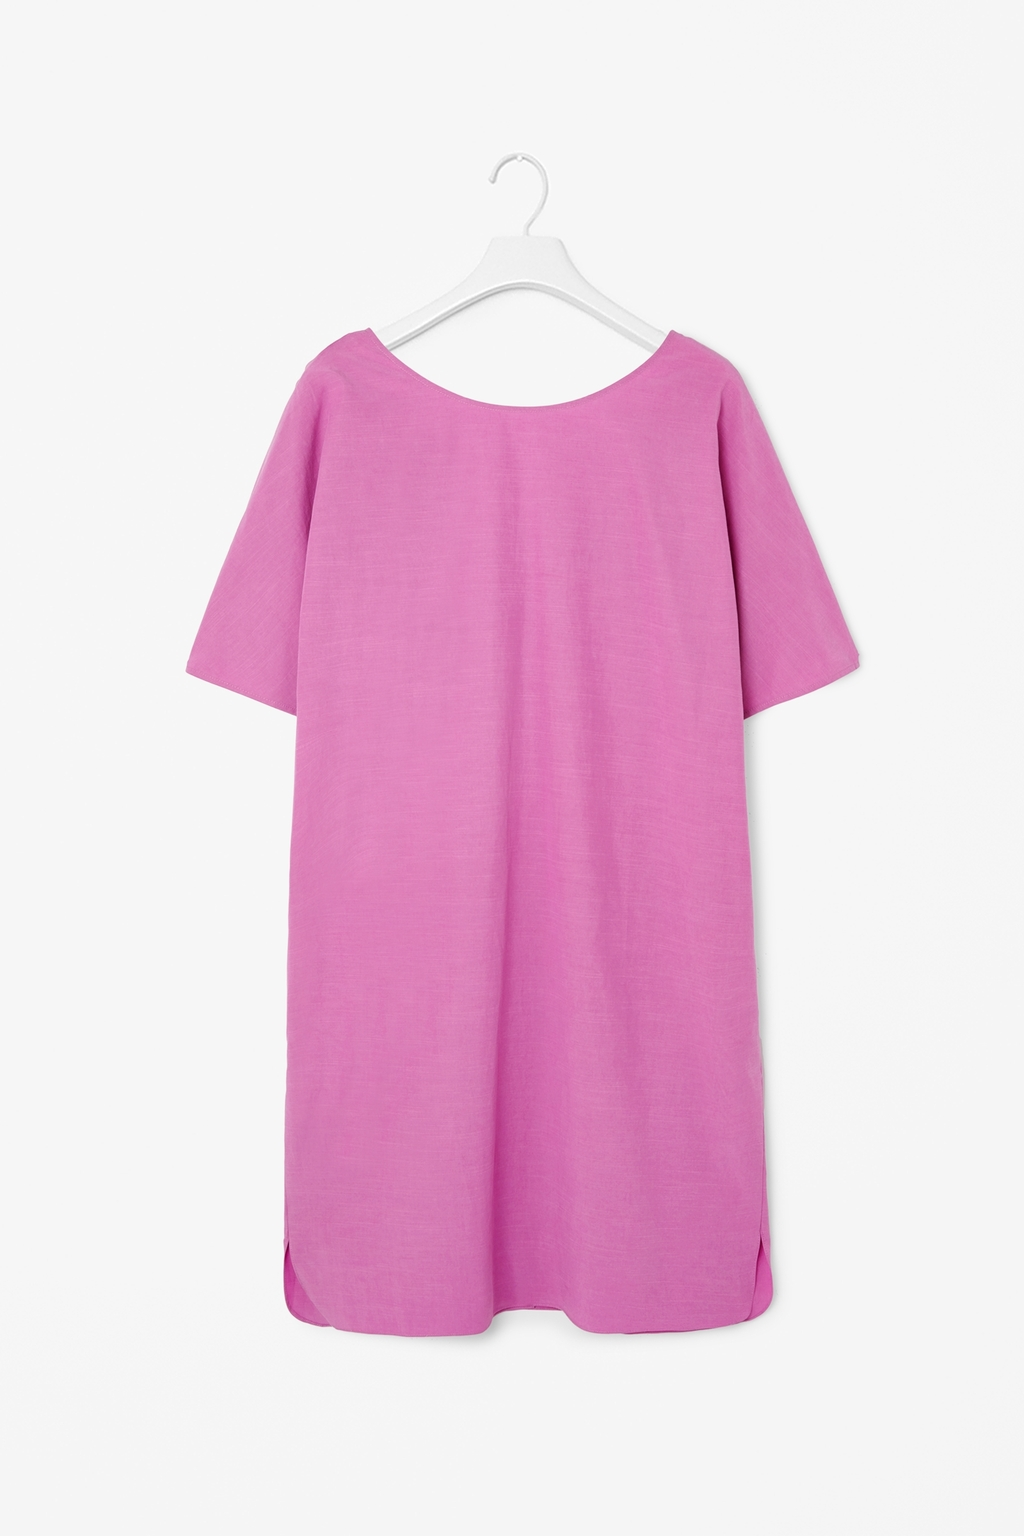 Dress With Low Back - style: tunic; neckline: round neck; pattern: plain; back detail: low cut/open back; predominant colour: pink; occasions: casual, evening, holiday; length: just above the knee; fit: straight cut; fibres: cotton - mix; sleeve length: short sleeve; sleeve style: standard; texture group: cotton feel fabrics; pattern type: fabric; trends: sorbet shades; season: s/s 2014